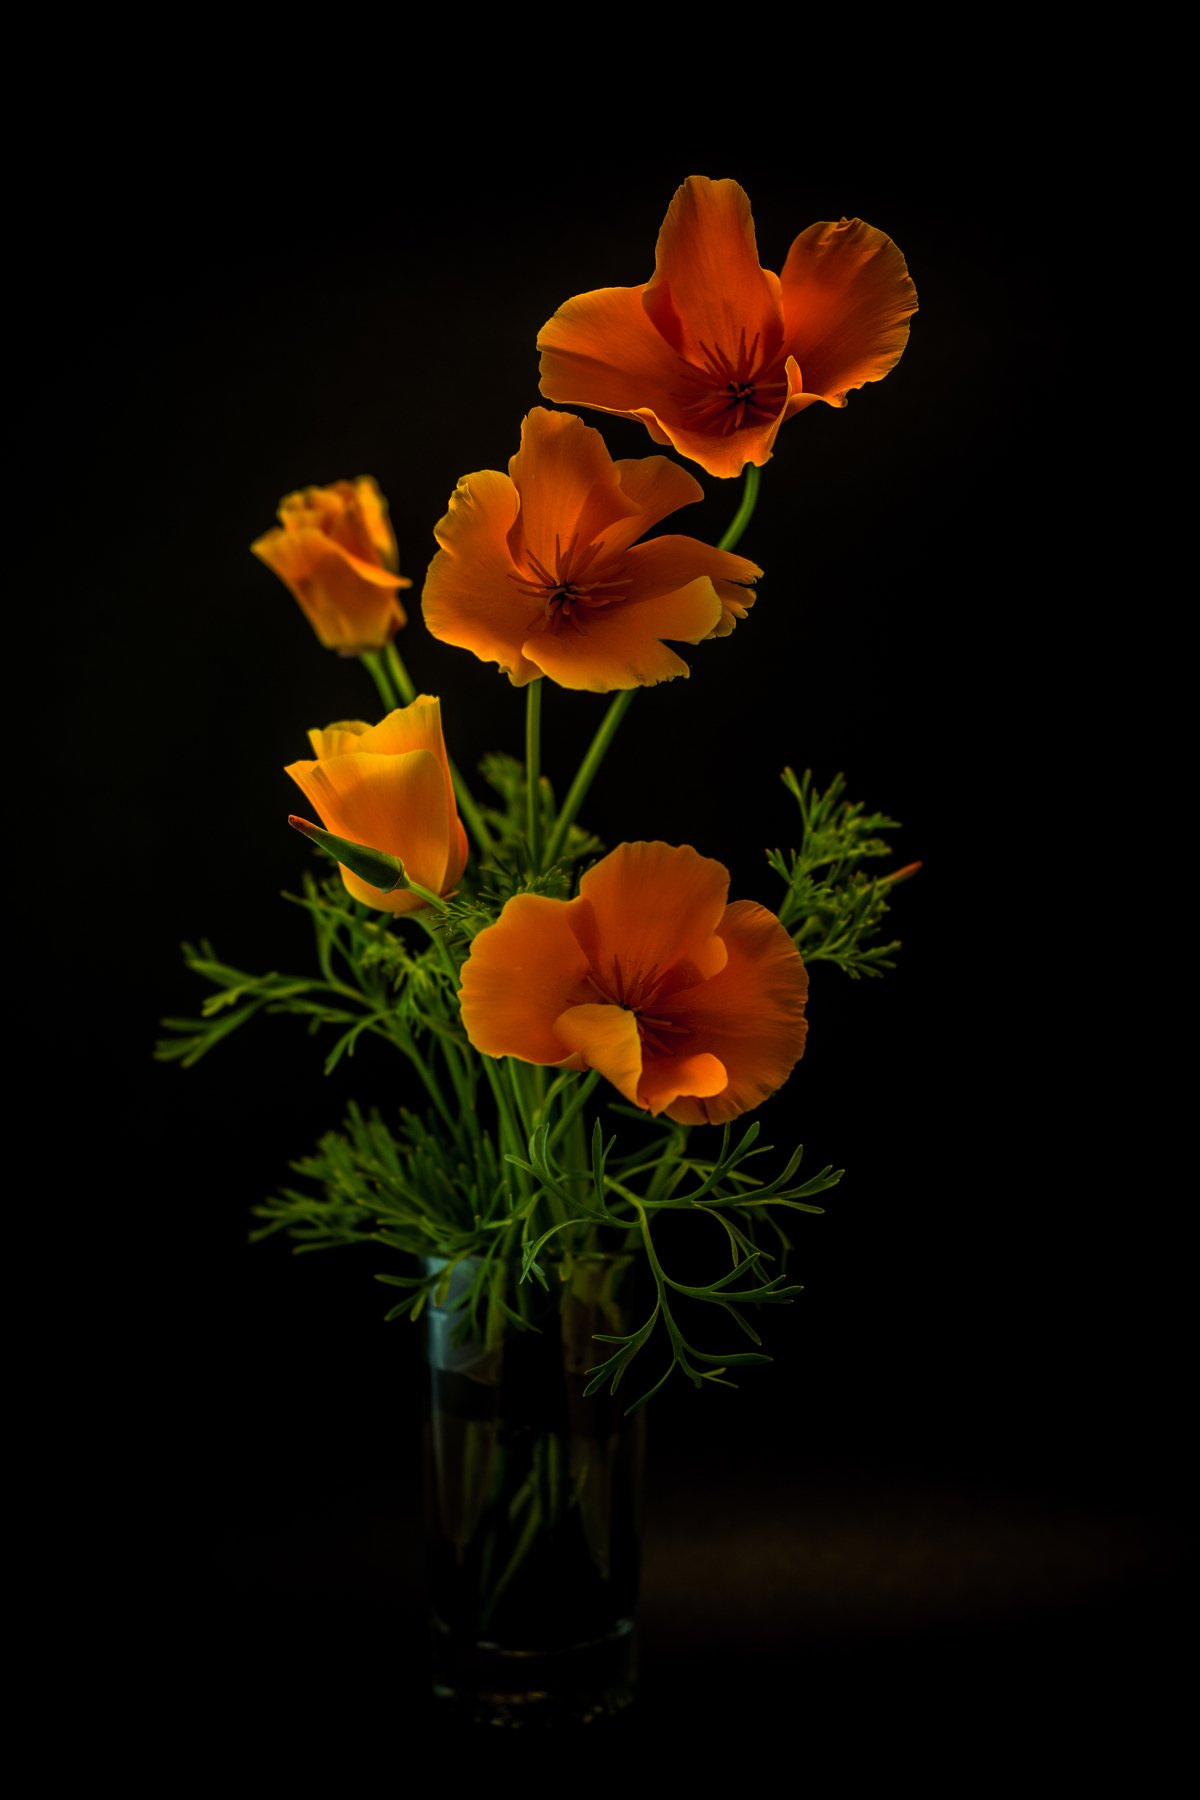 fragile, still life, interior, flowers, poppies, orange, green, background, Antonio Bernardino